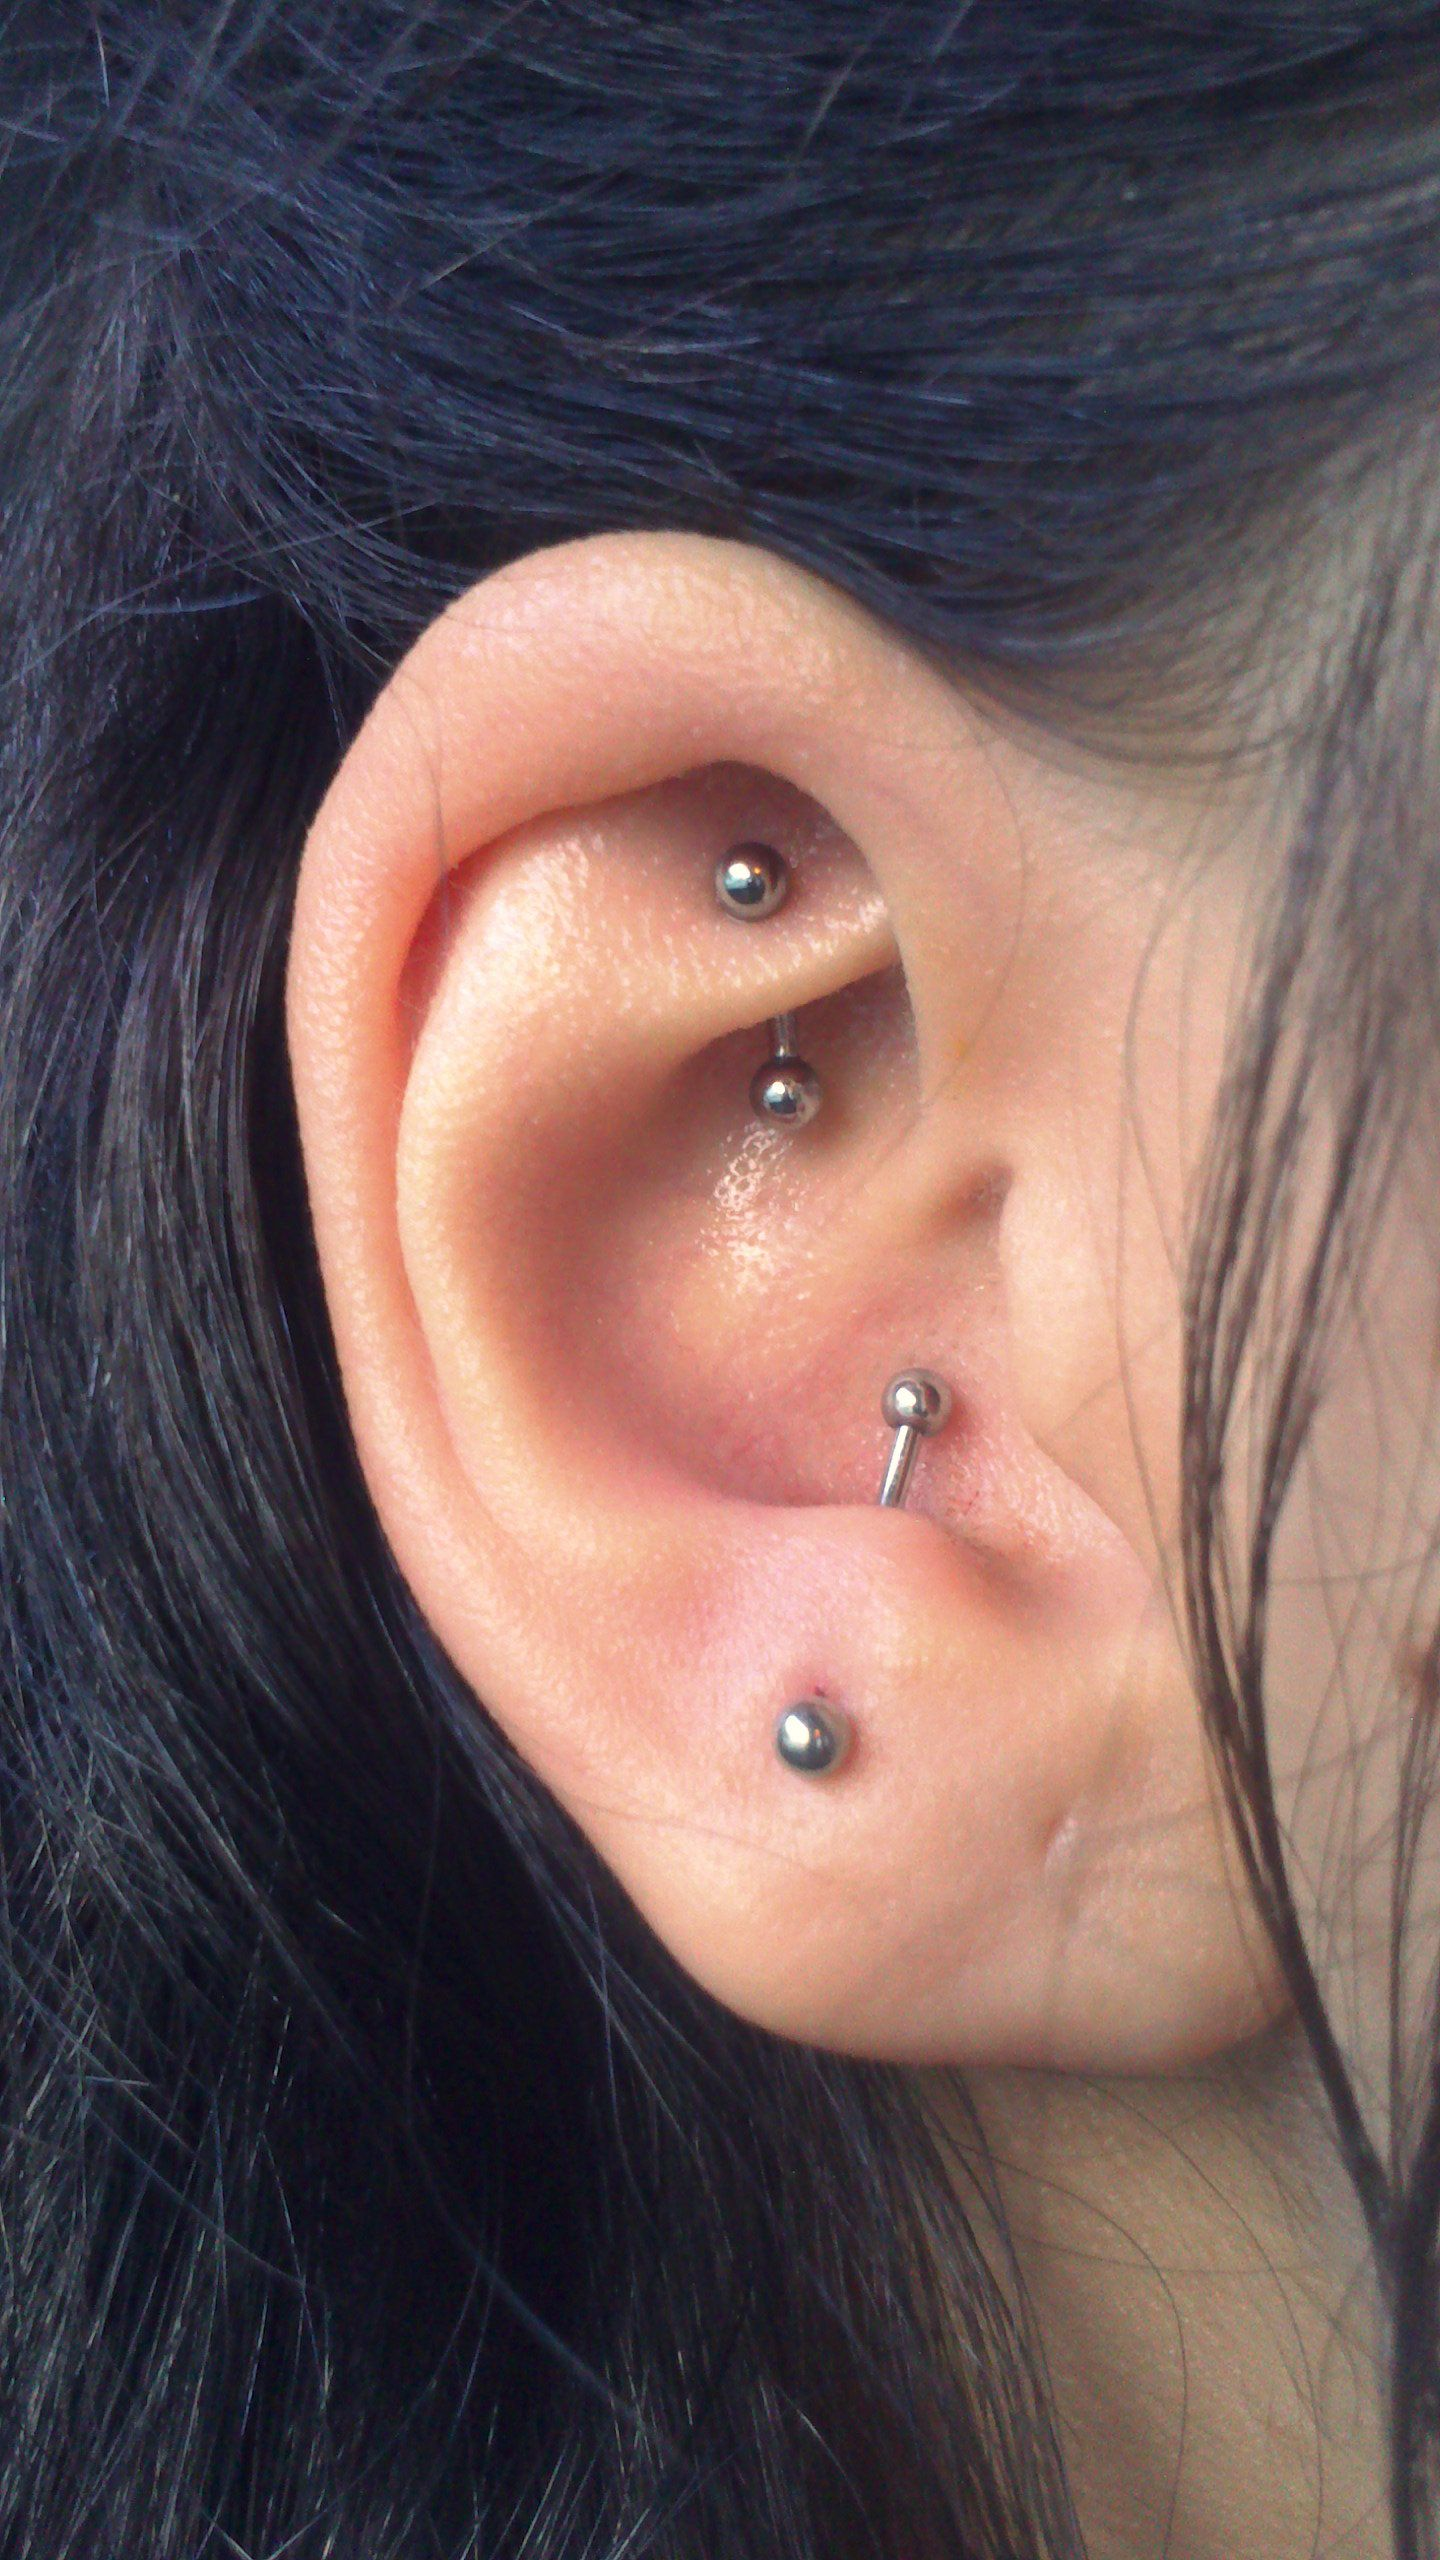 Nose piercing over 40  Antitragus and tragus piercings  Piercings  Pinterest  Tragus